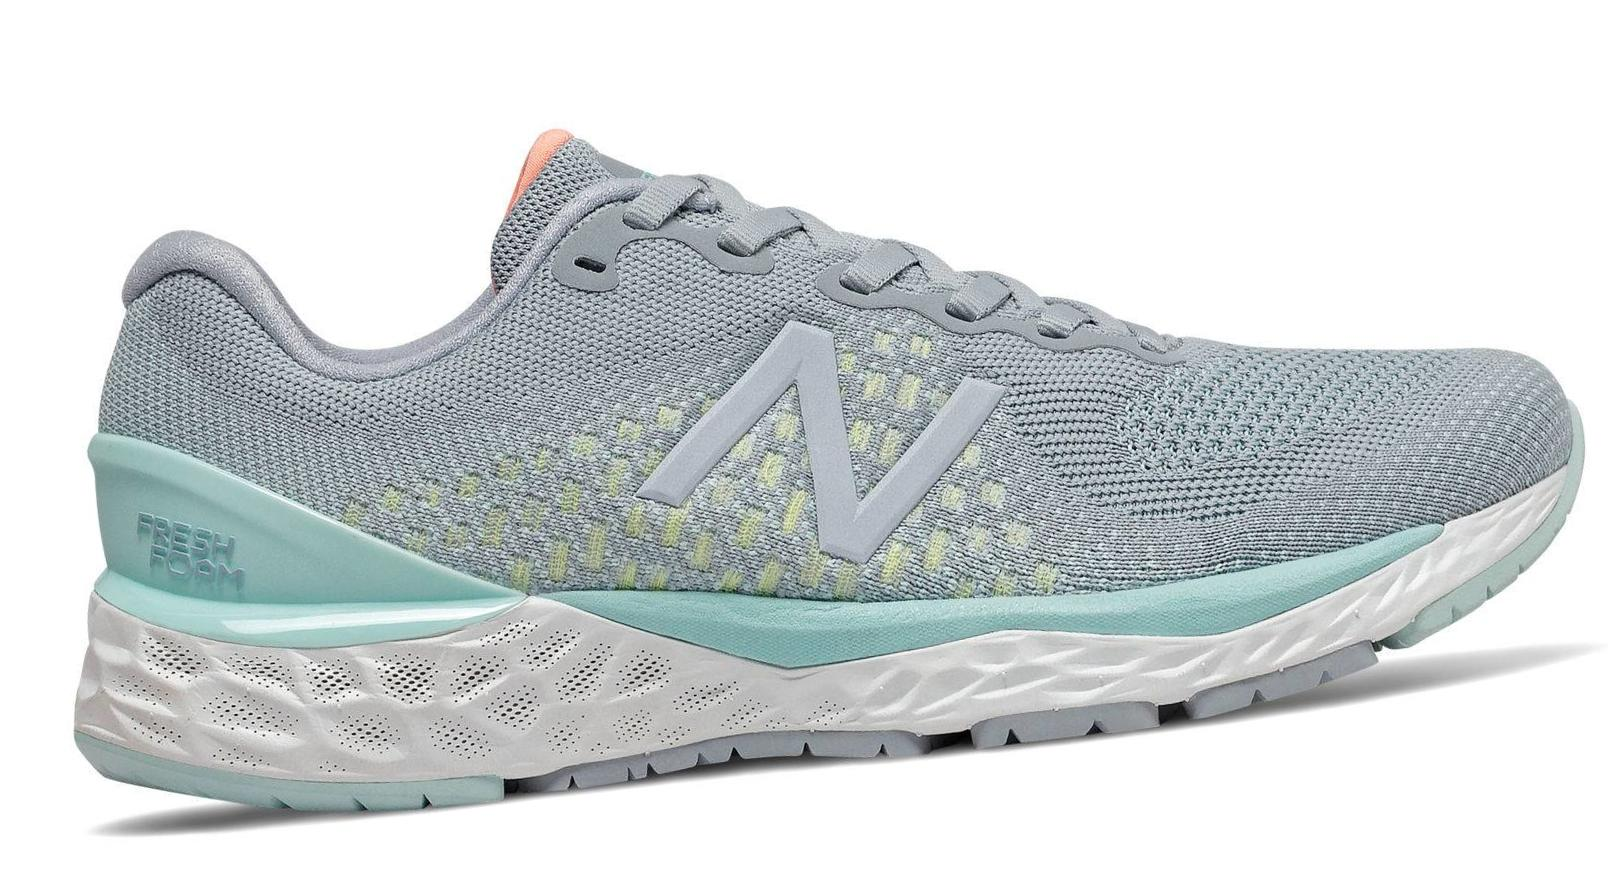 New Balance Fresh Foam 880 v10